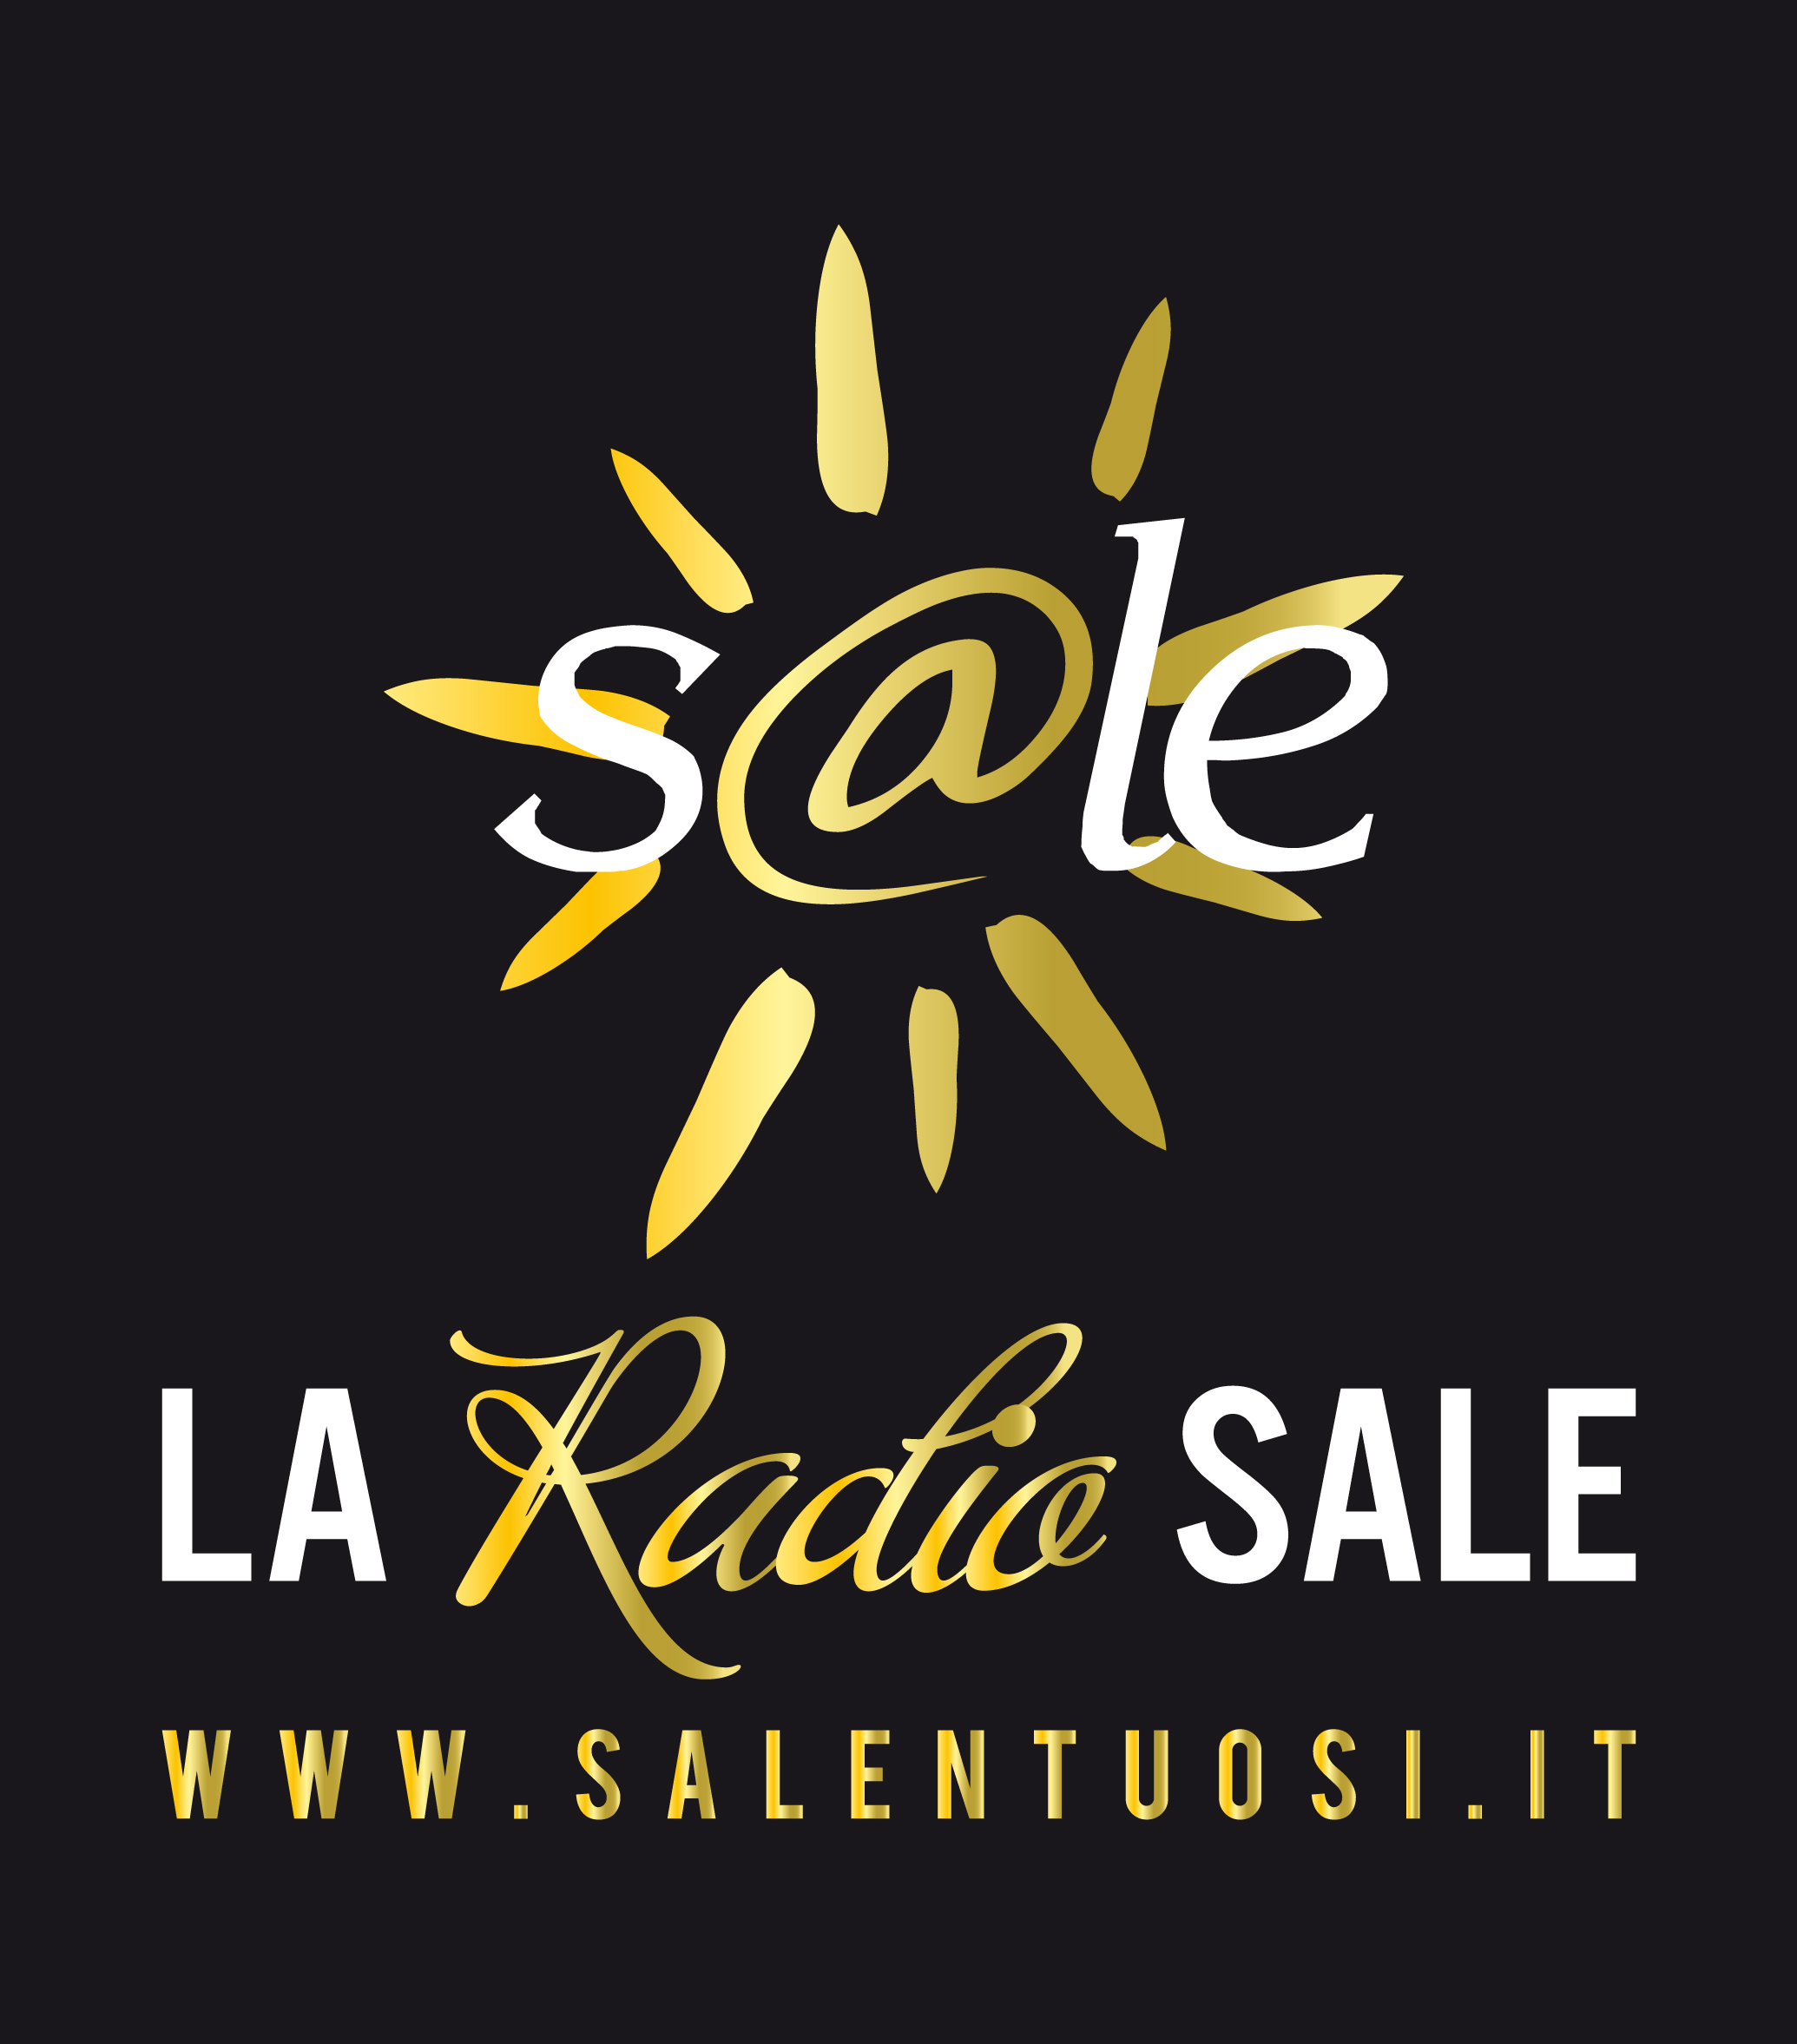 Radio Salentuosi